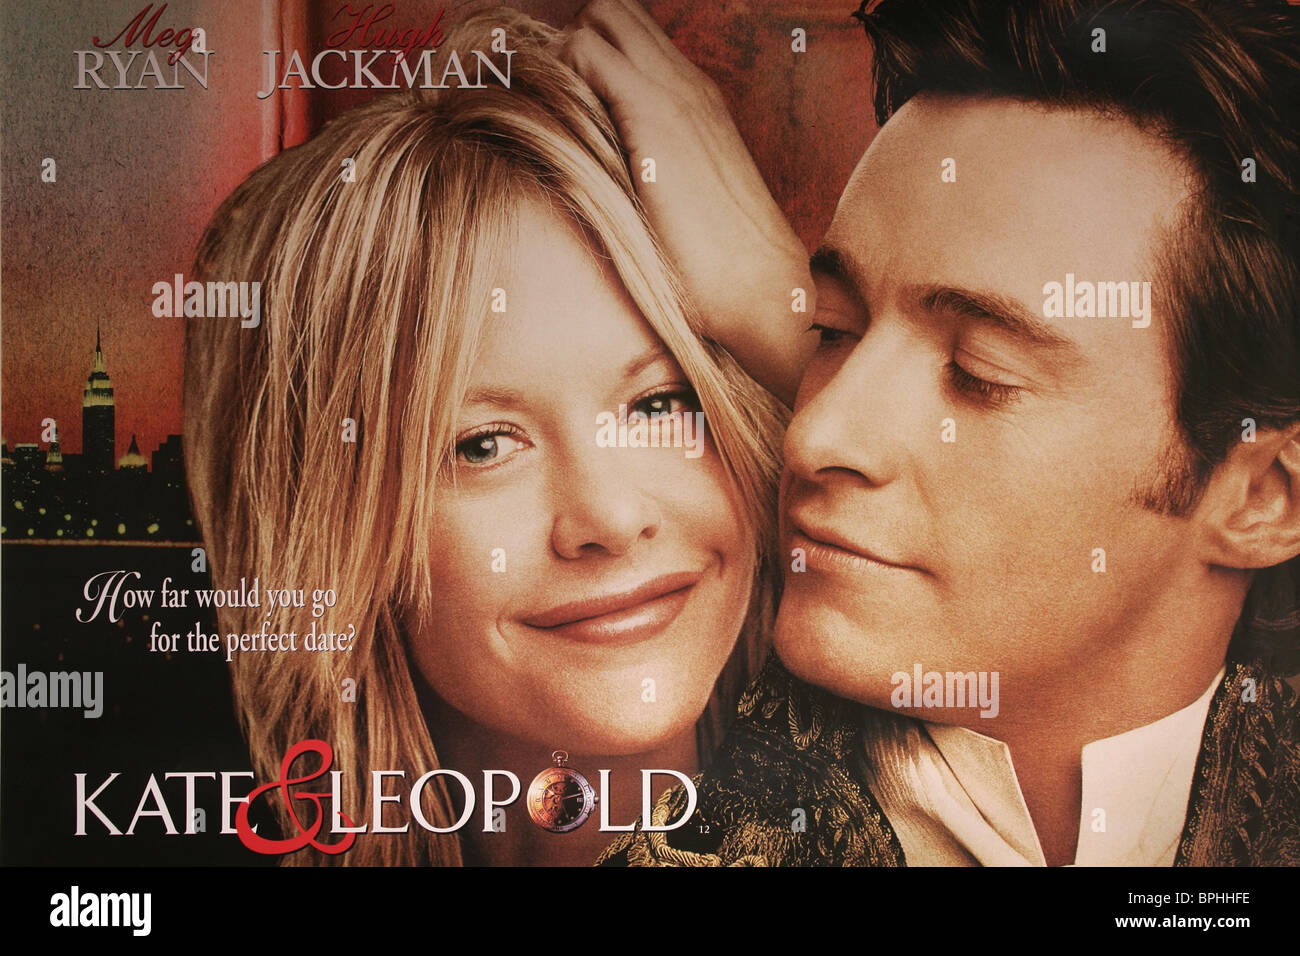 kate and leopold full movie online youtube